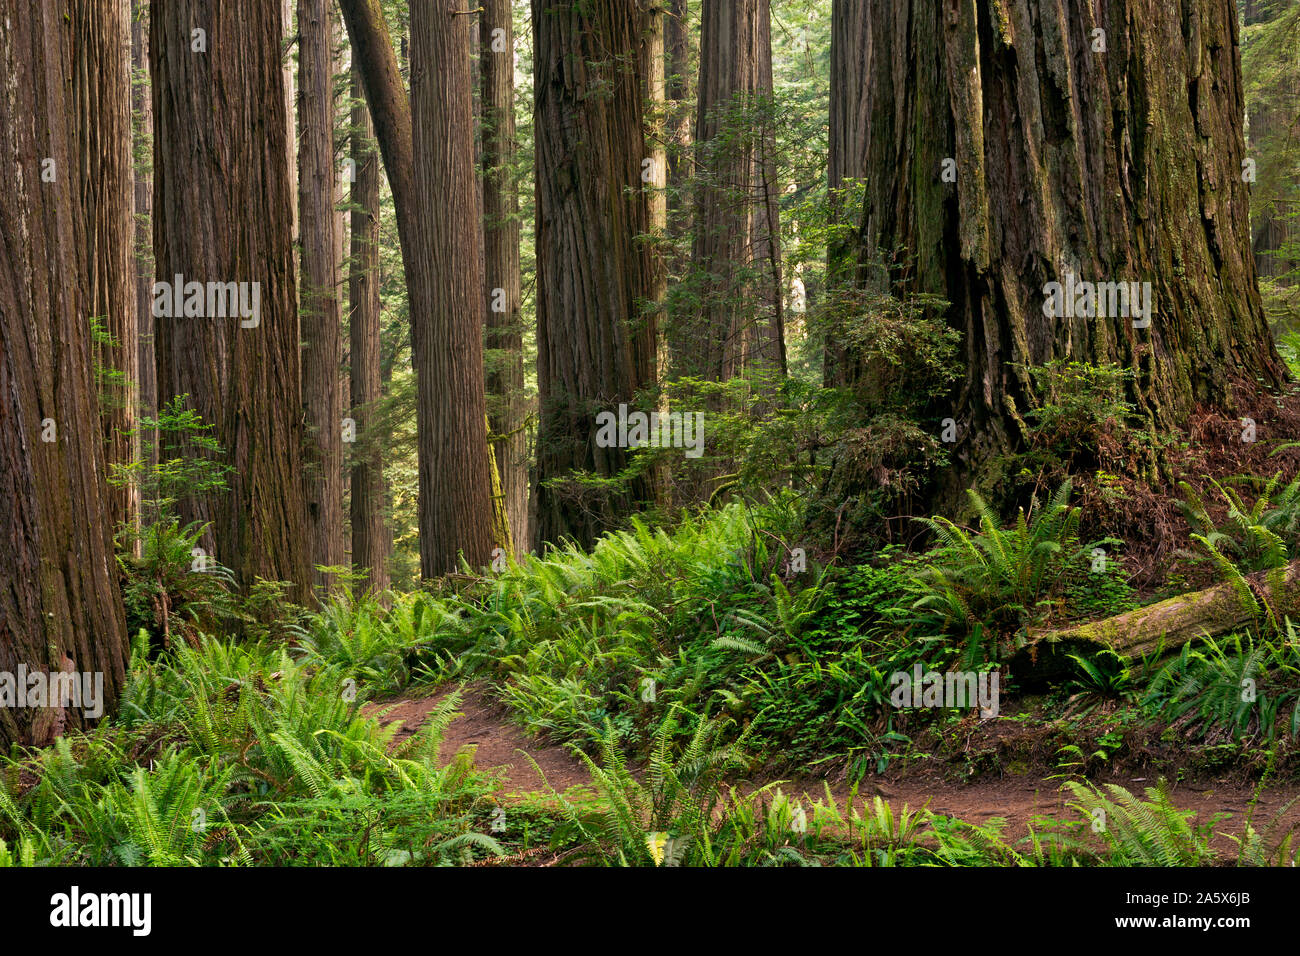 CA03766-00...CALIFORNIA - The Boy Scout Tree Trail winding through a redwood forest in Jedediah Smith Redwoods State Park; part of Redwoods National a Stock Photo